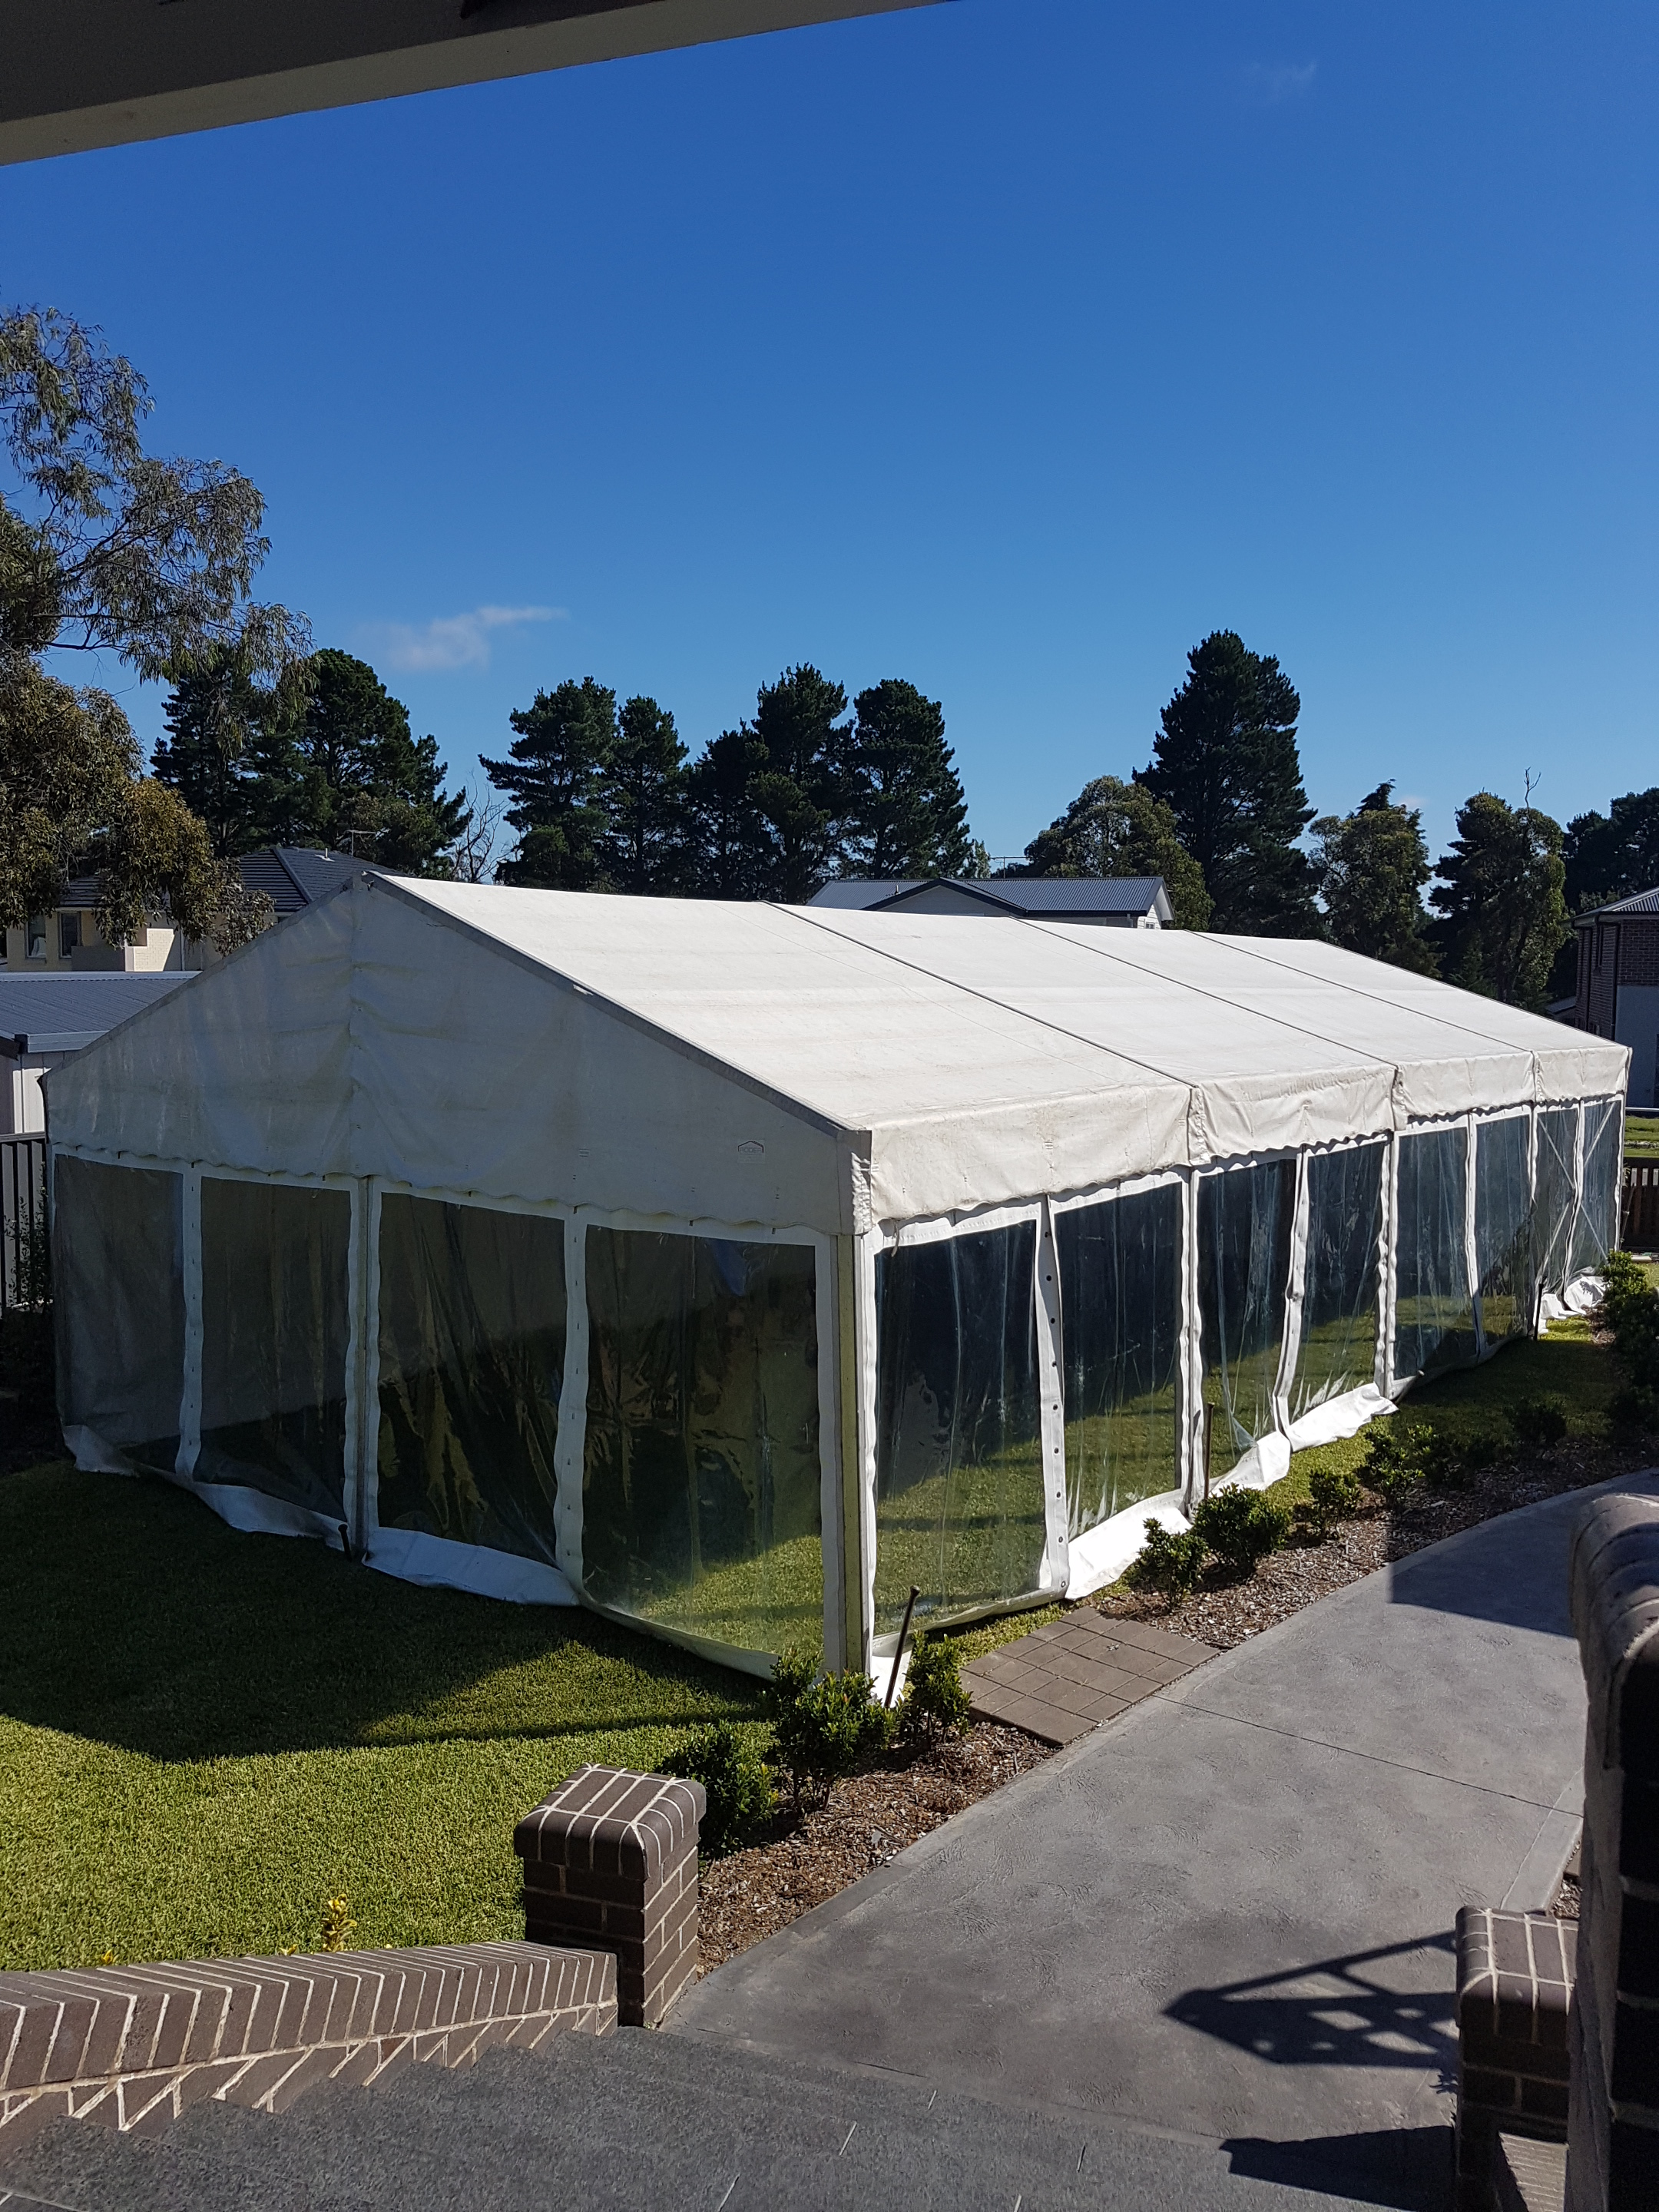 6 x 12m free standing structure.